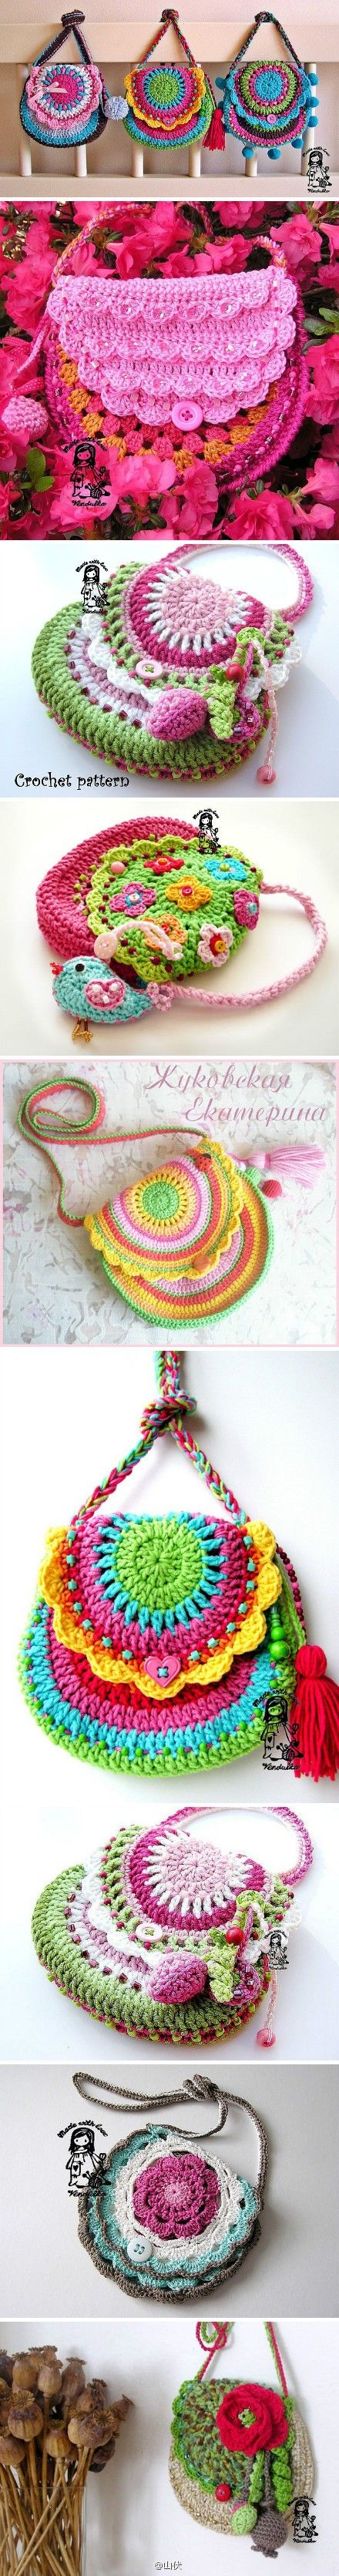 .Purses #crochet #twins #Easter